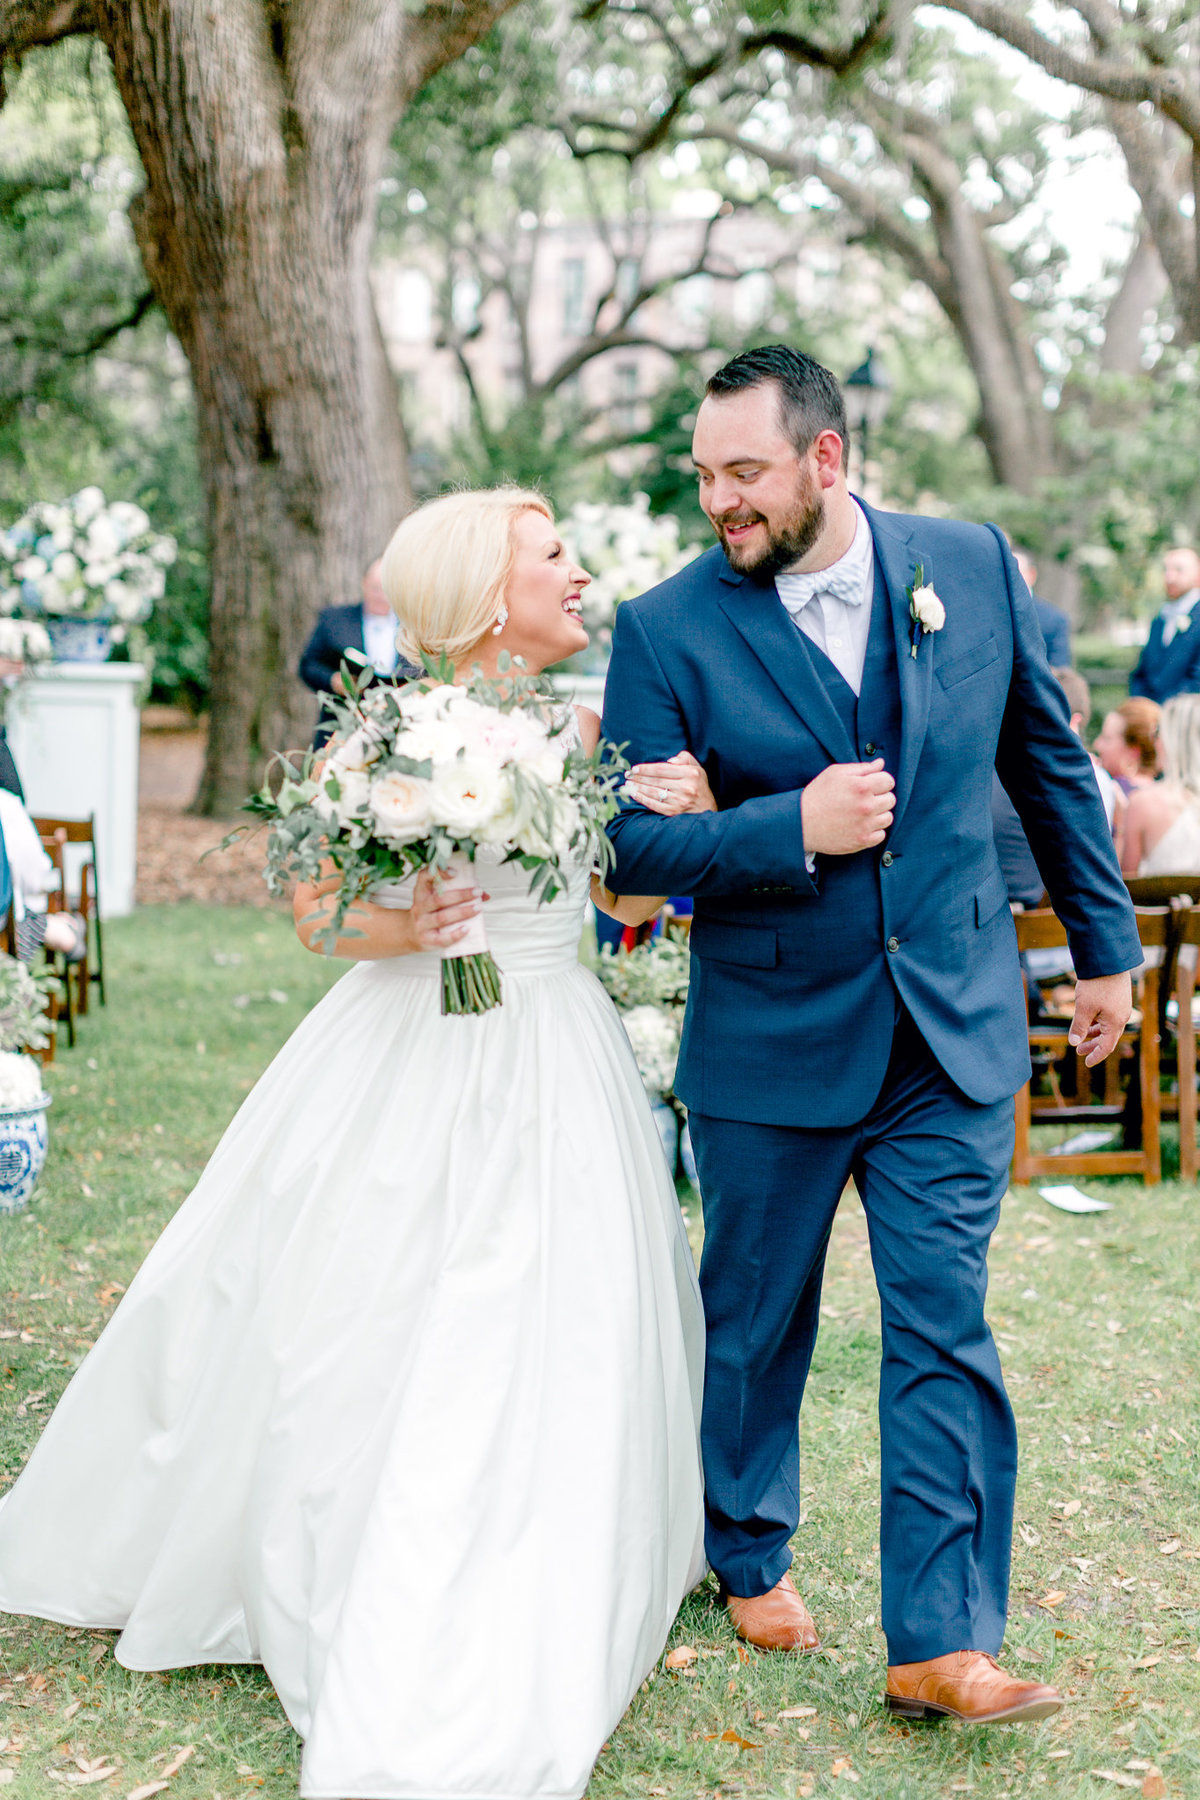 Savannah-Georgia-Wedding-Photographer-Holly-Felts-Photography-Wilmon-Wedding-268